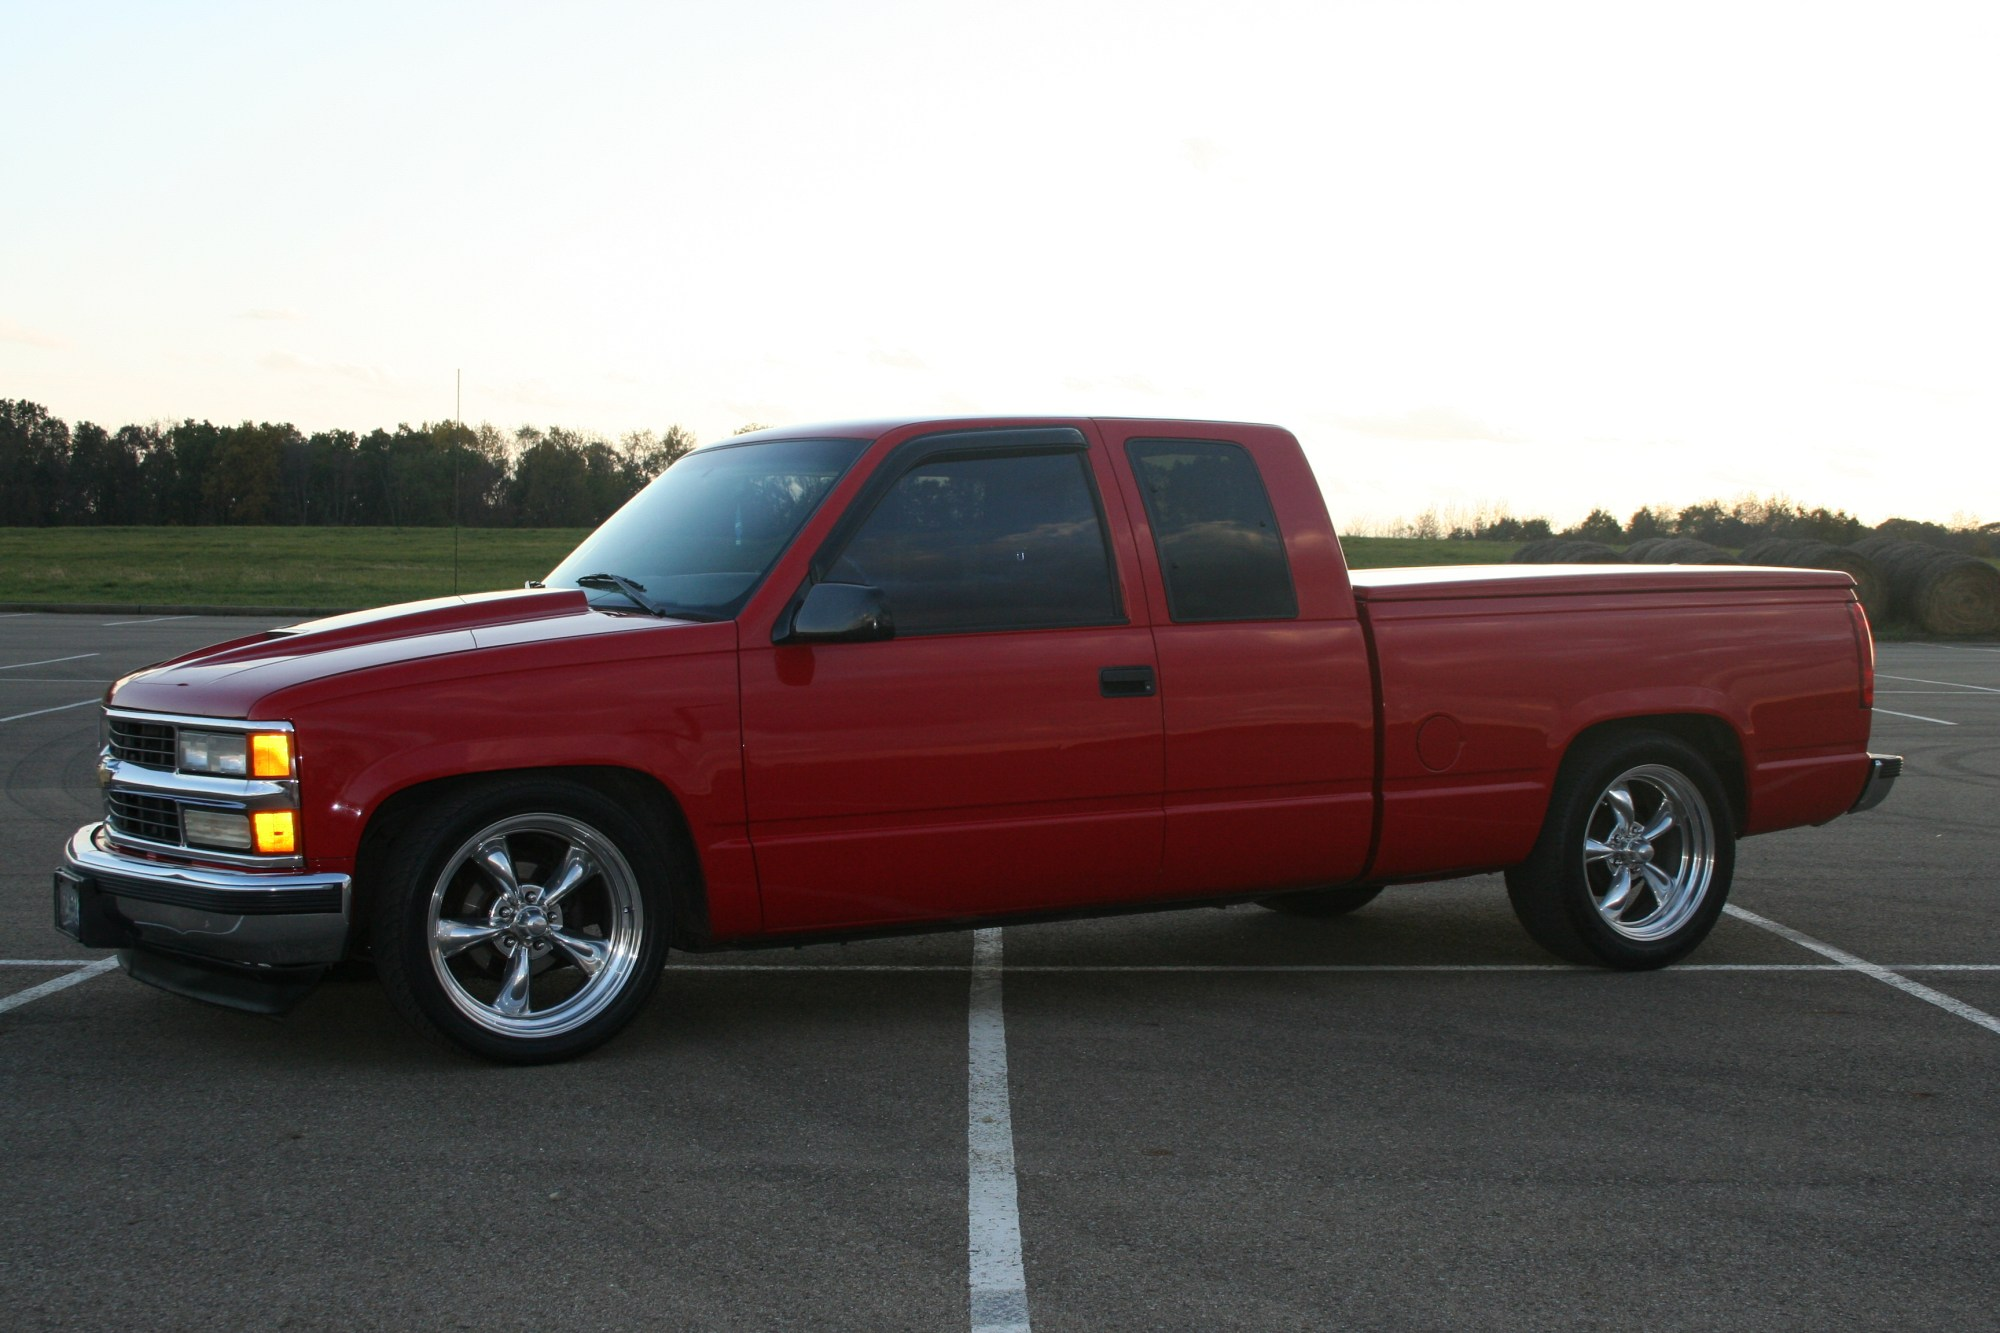 hight resolution of  sritchie 1997 chevrolet silverado 1500 extended cab 31633740004 original